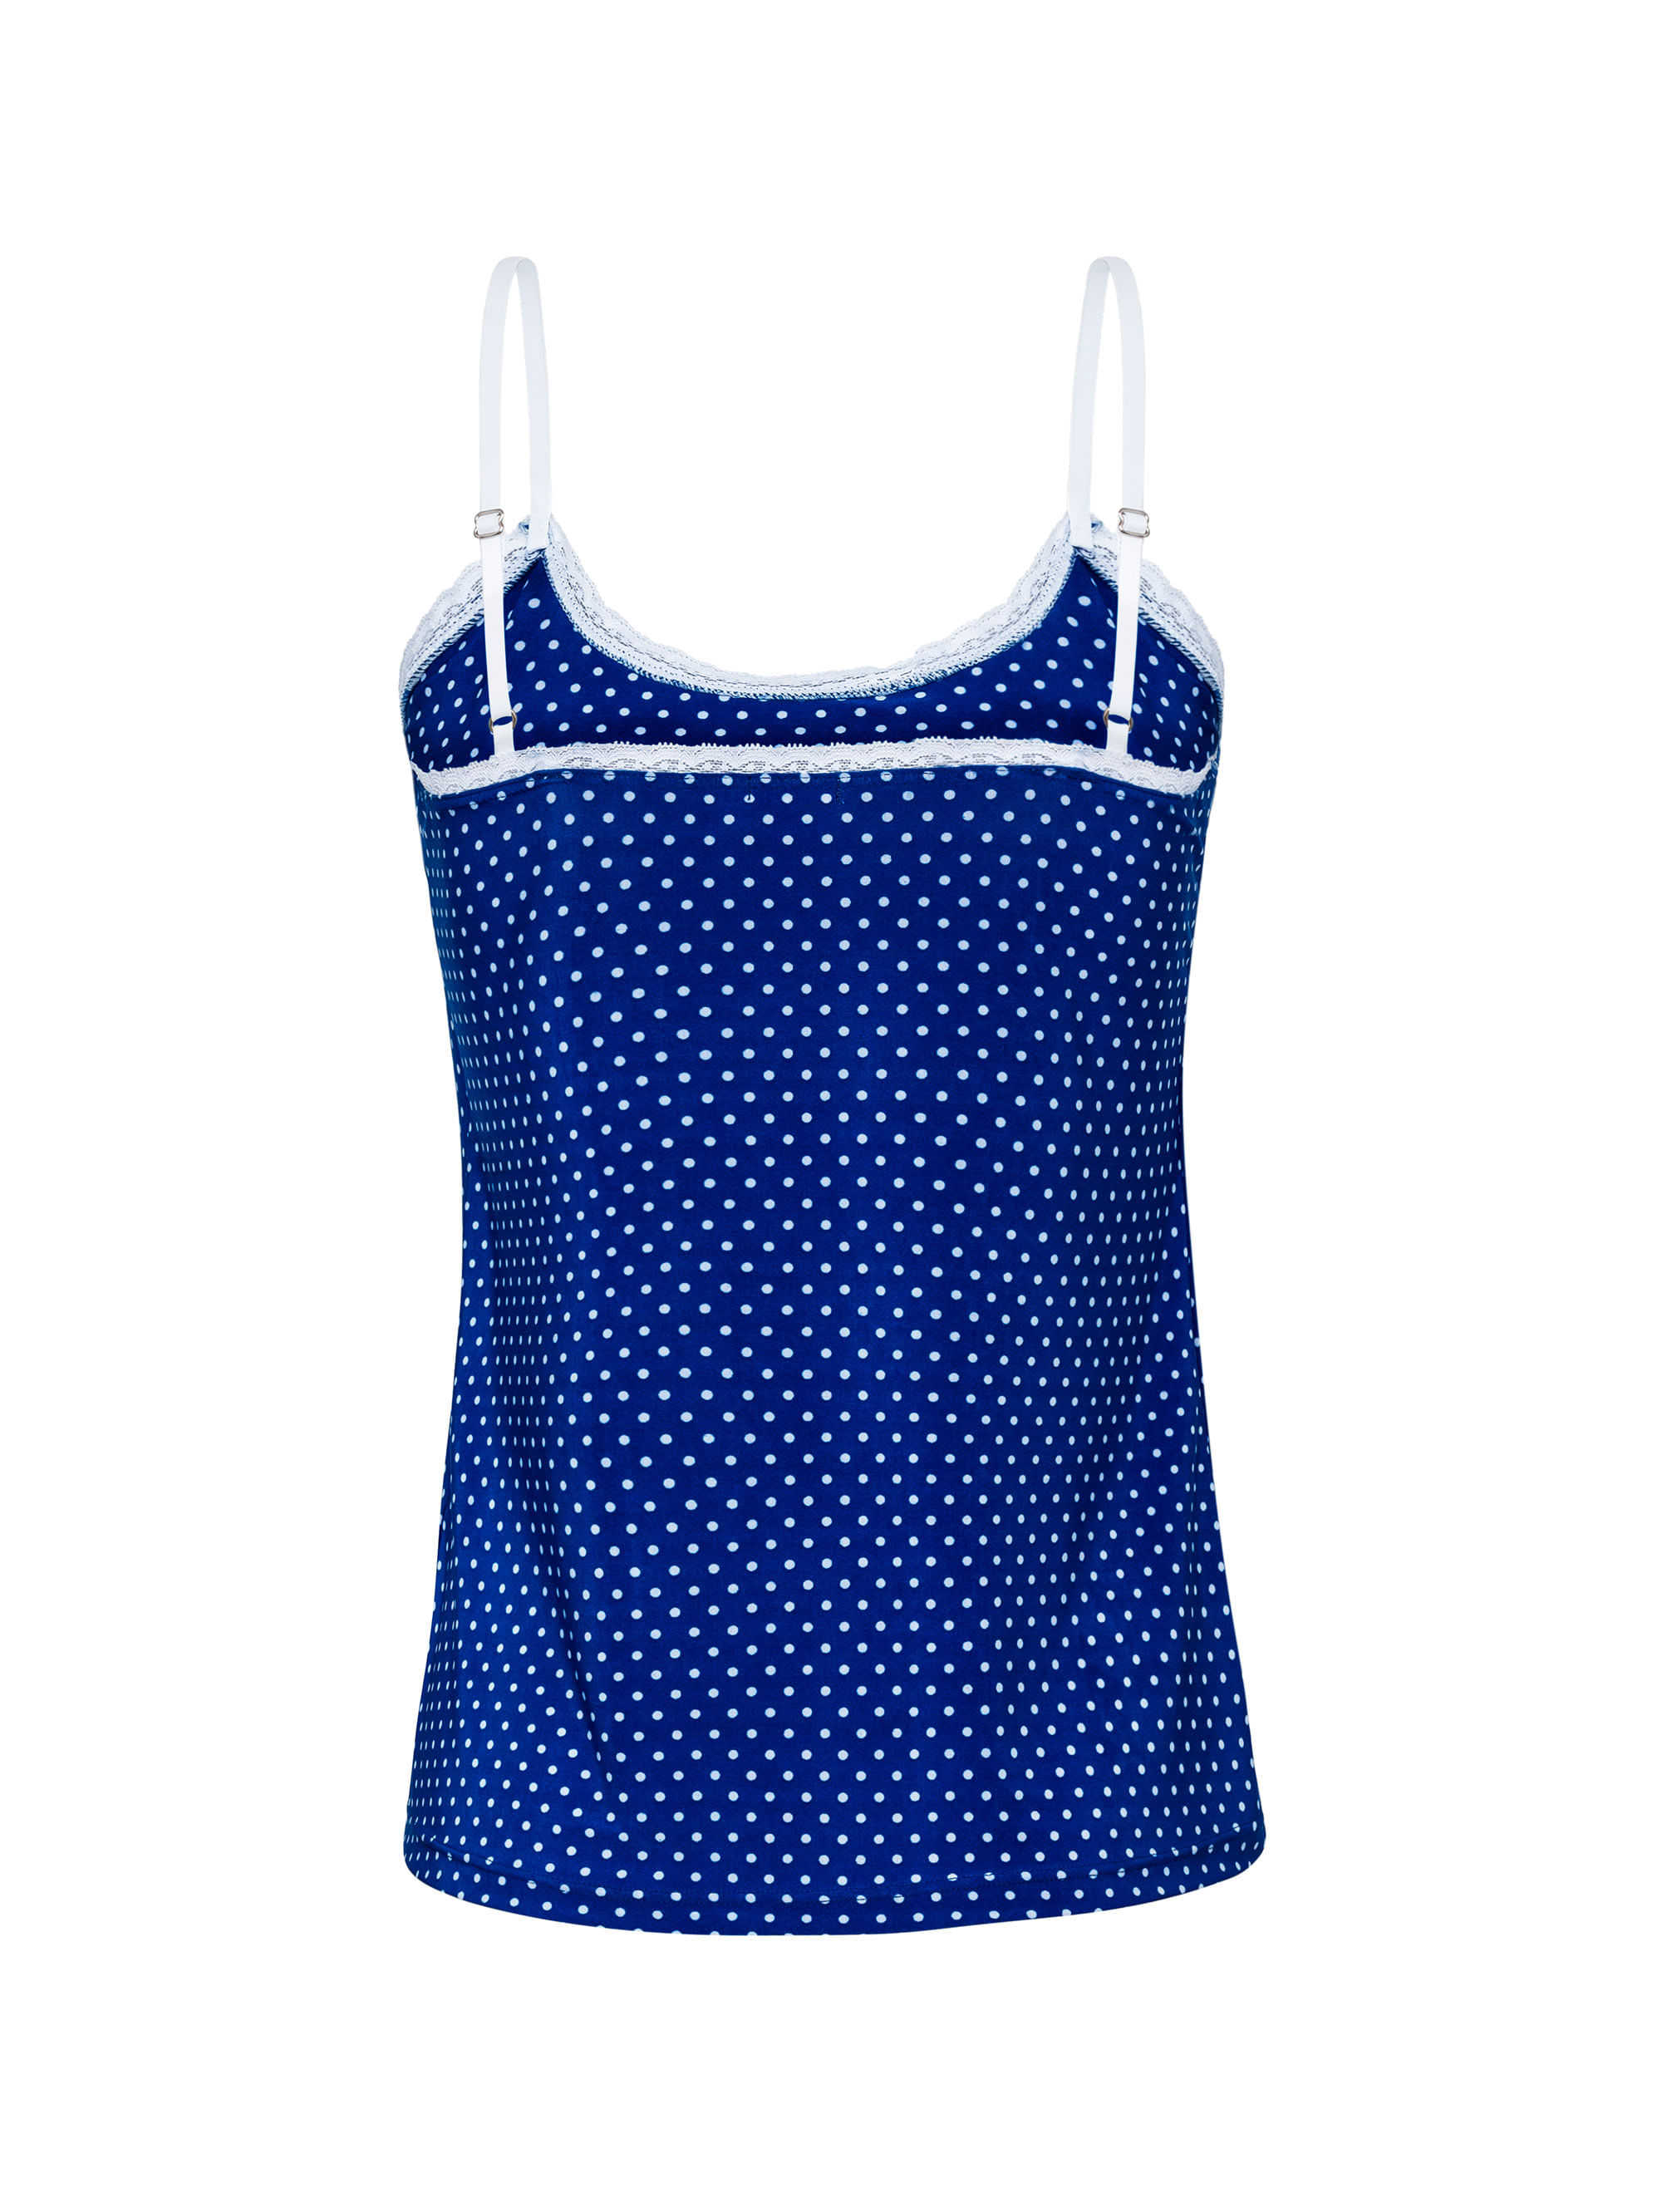 SD-RG-J-DOTS-BLUE-0603163302027-VERSO